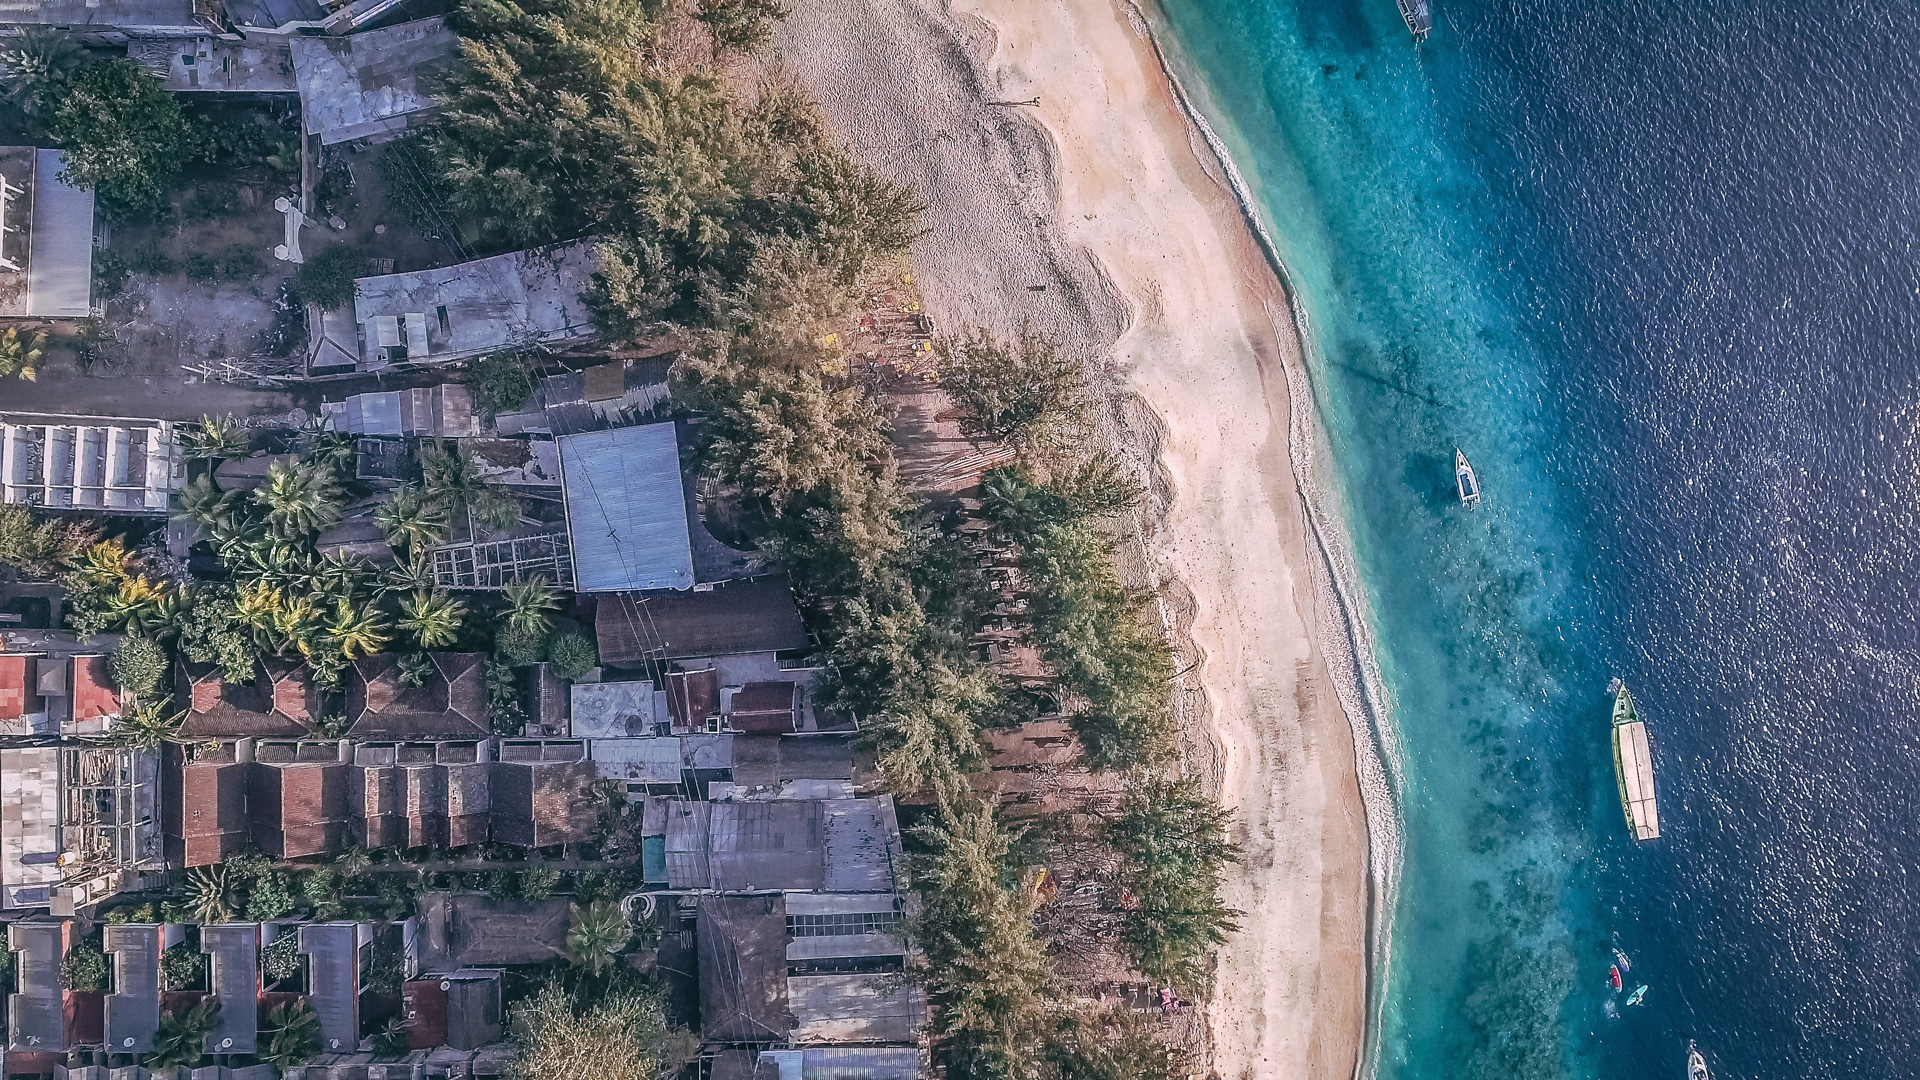 Gili from above after the 2018 earthquakes. Is it safe to travel to the Gili Islands after the 2018 earthquakes?